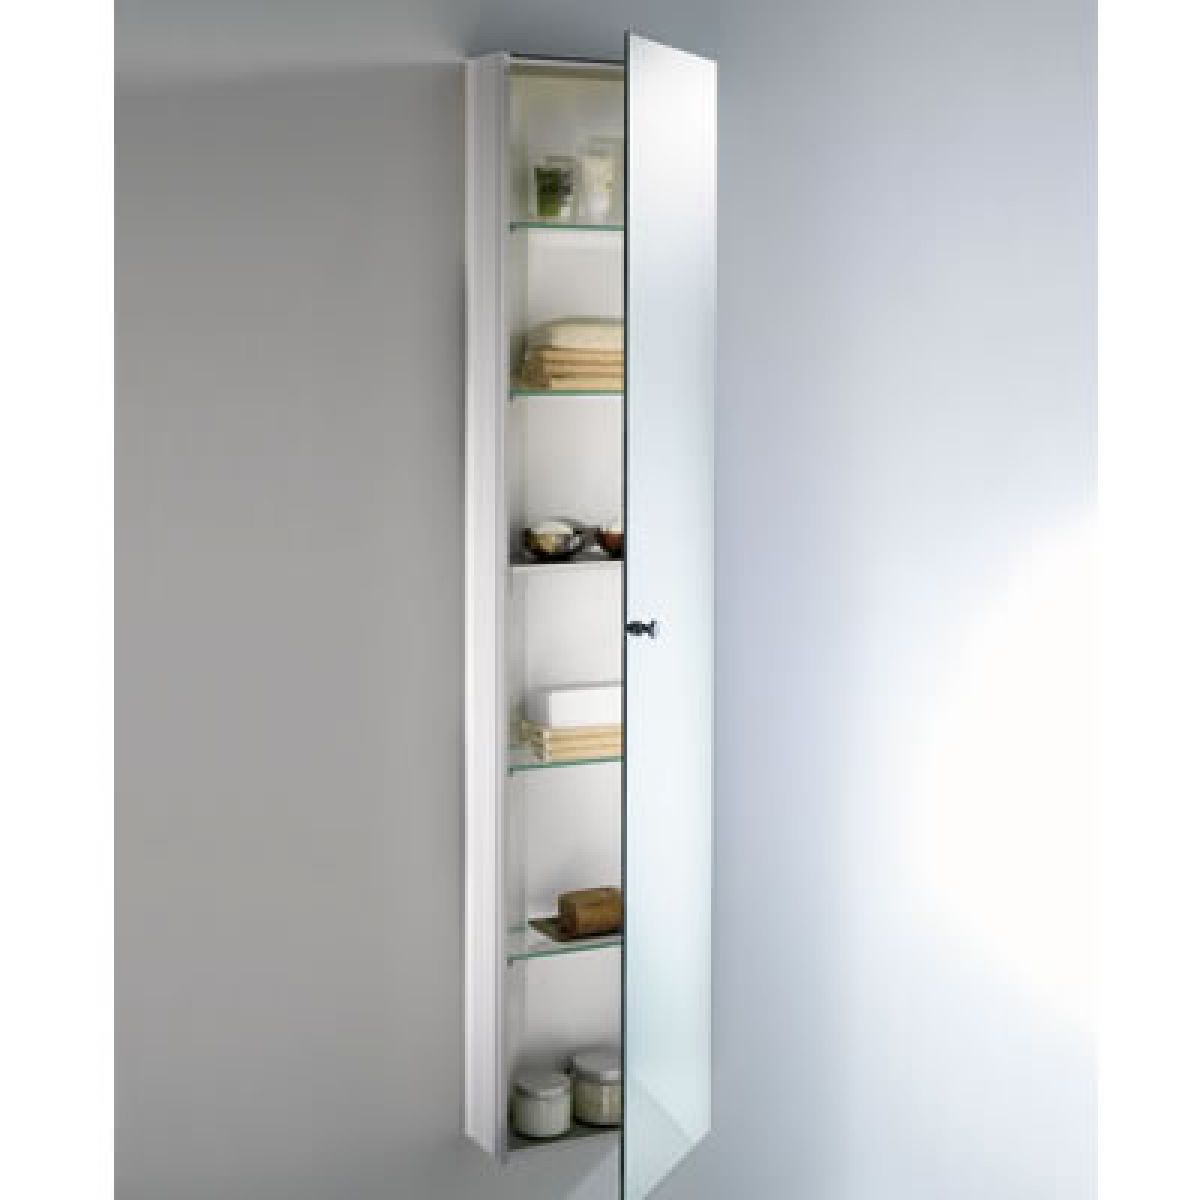 Schneider Wangaline 1 Door Tall Bathroom Cupboard 150 035 01 50 Uk Bathrooms